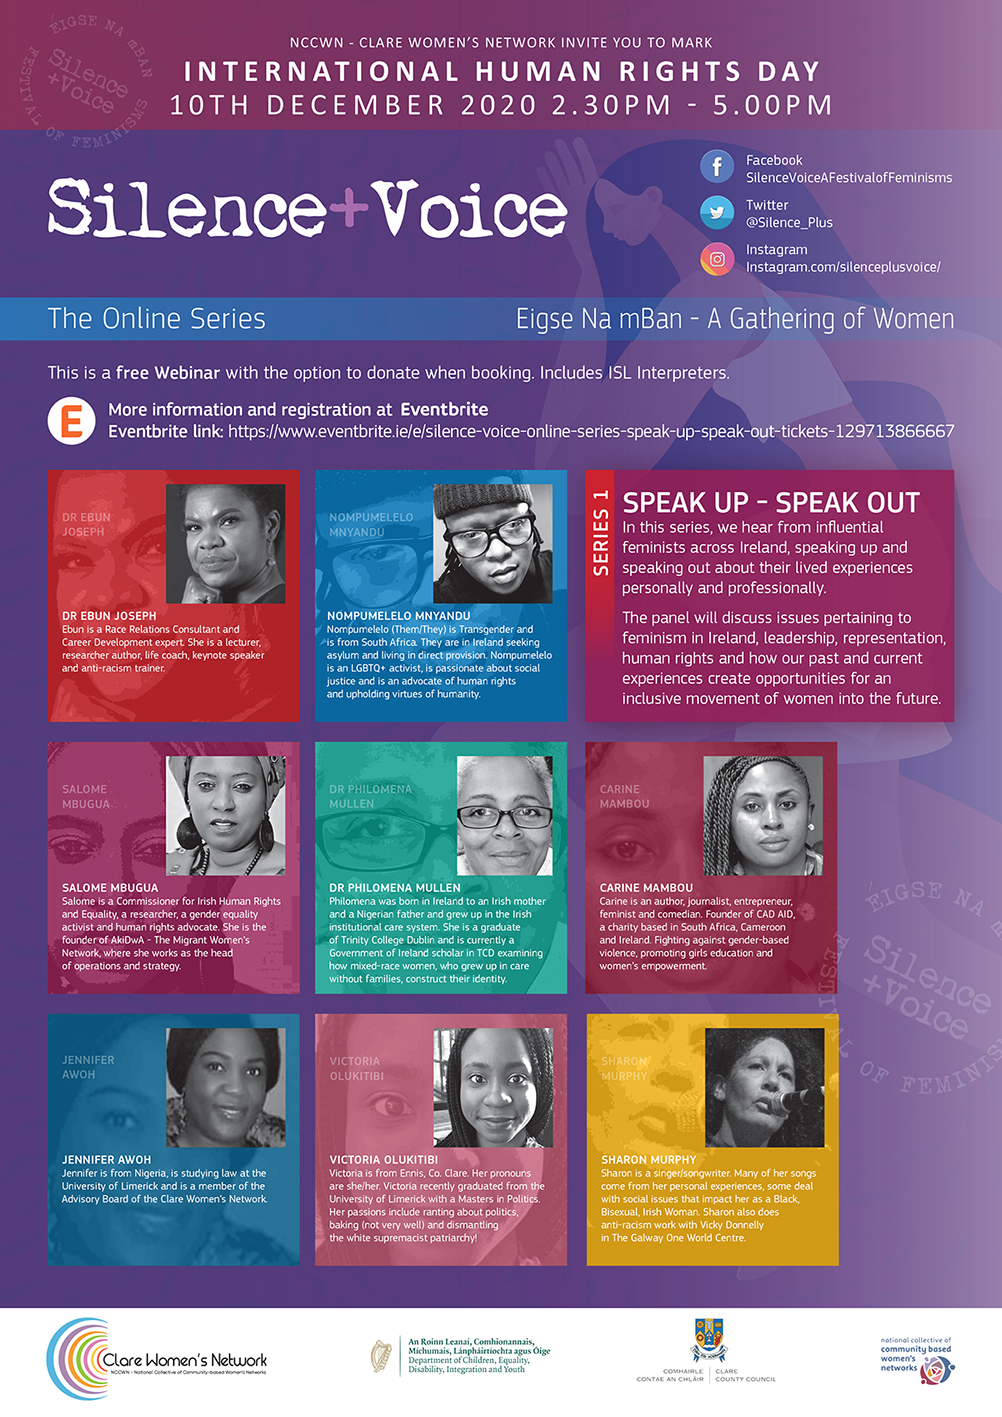 NCCWN Clare Women's Network are delighted to announce our Silence + Voice online series, Speak Up Speak Out.  This webinar takes place on International Human Rights Day, Thursday, December 10th at 2:30pm.